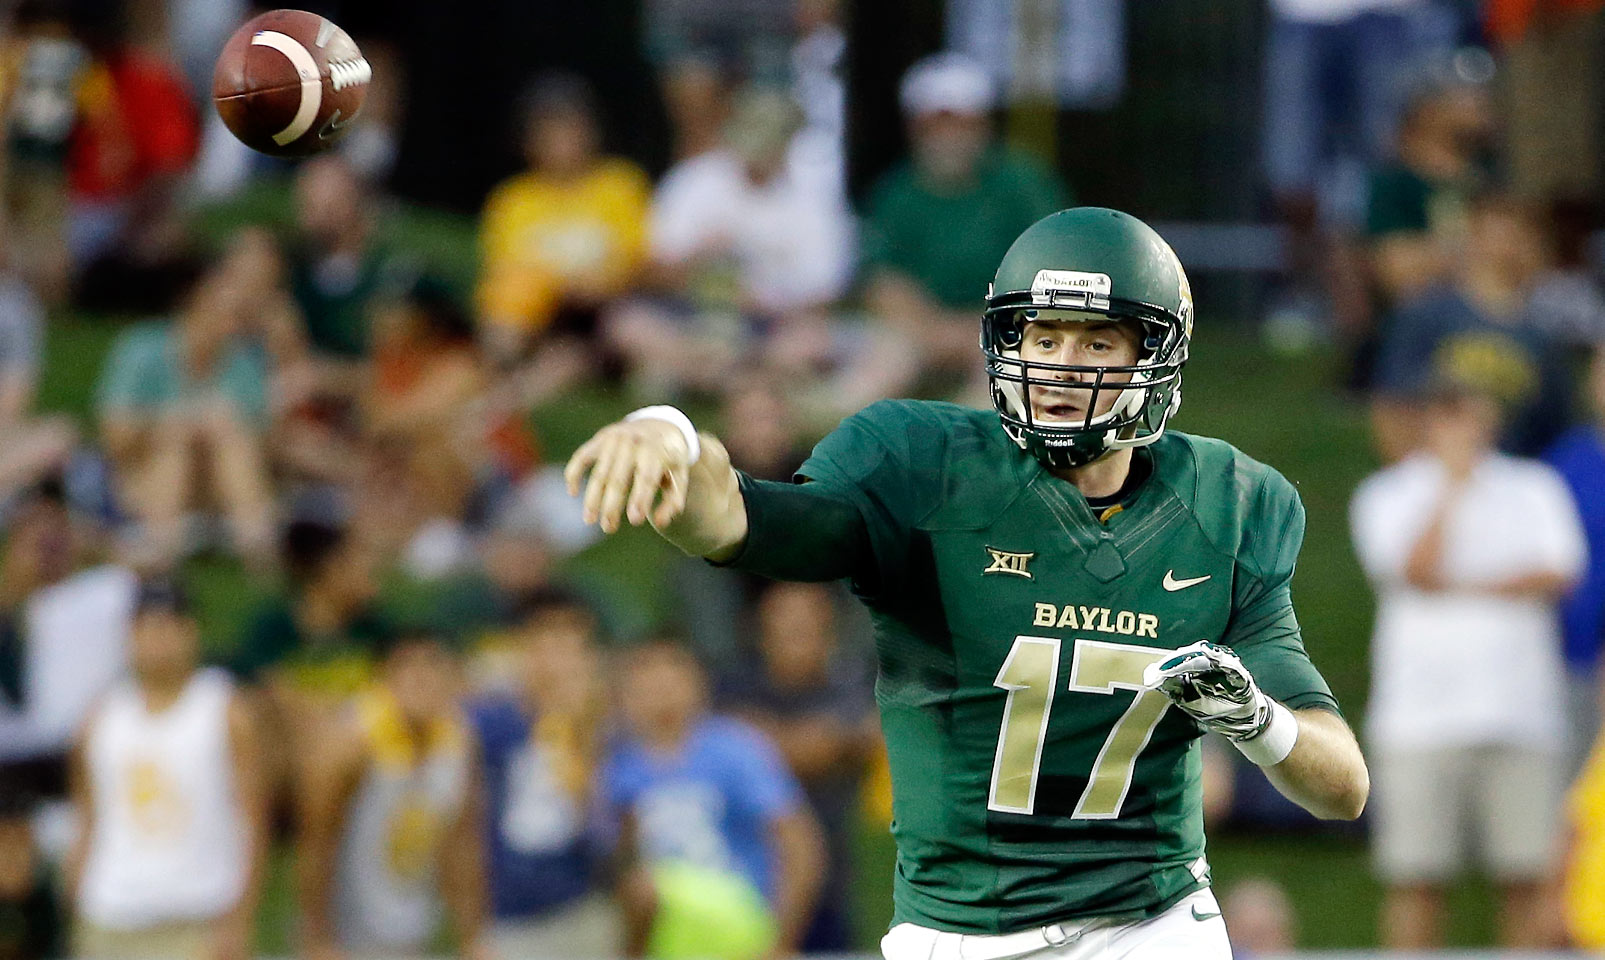 Russell is the likely successor to Bryce Petty as the leader of the Bears' offense. He's shown flashes of his talent in the past—the rising junior threw for 438 yards in Petty's absence against Northwestern State last season—and his running ability should help keep Baylor's offense as explosive as it always has been under Art Briles.